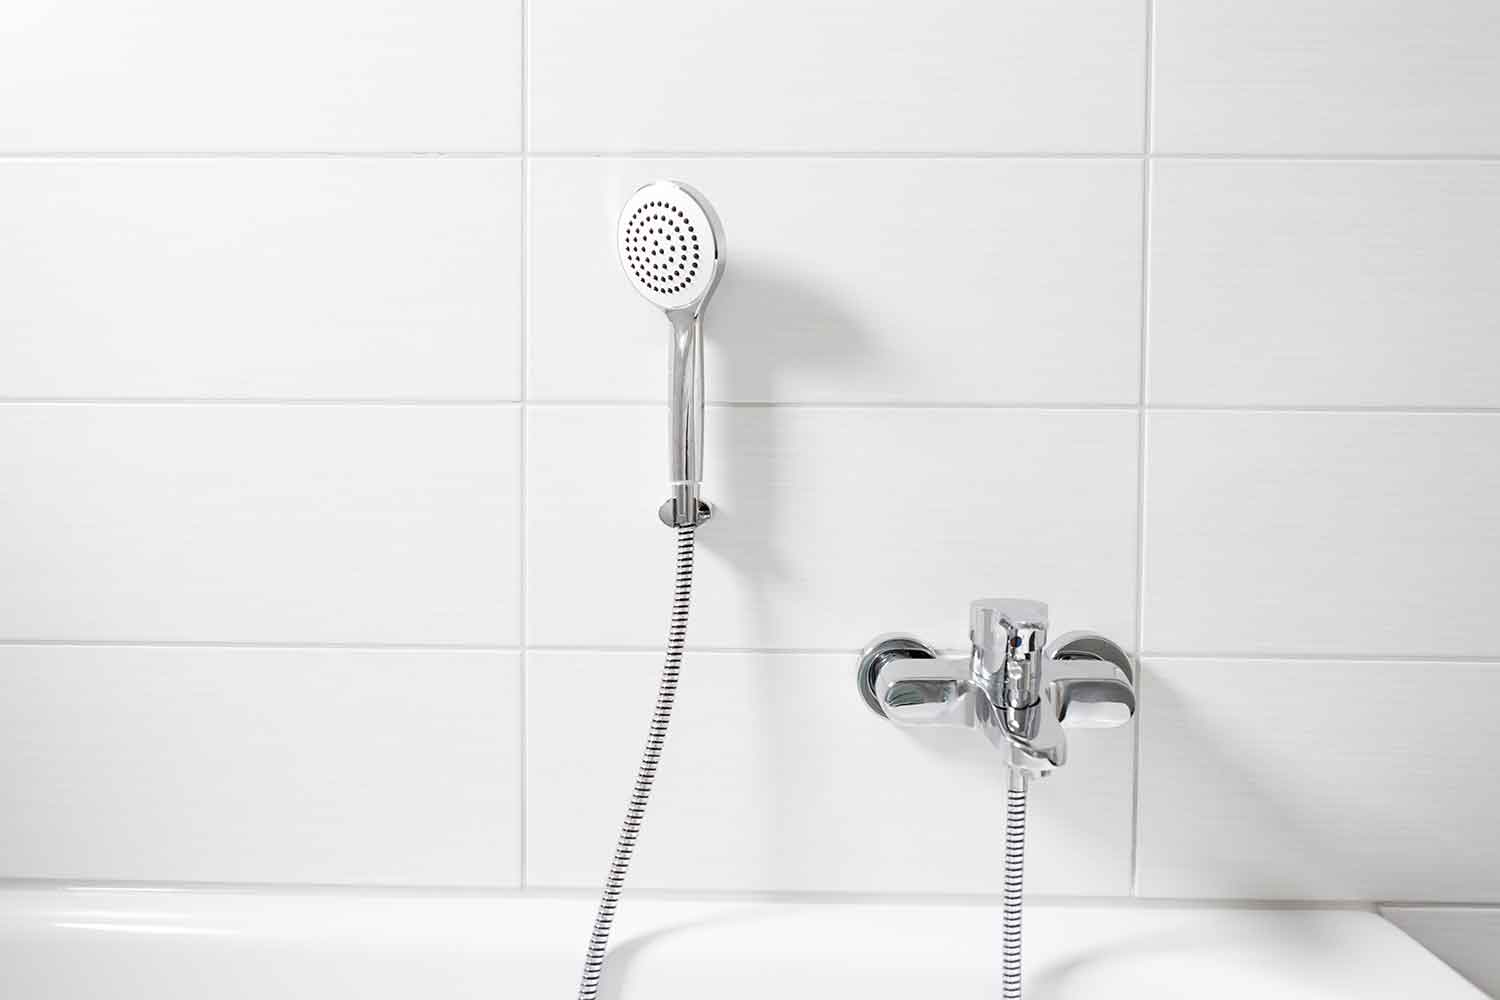 Bathroom Grout Bathroom Ideas Use A Grout Pen To Transform Tiles Better Homes